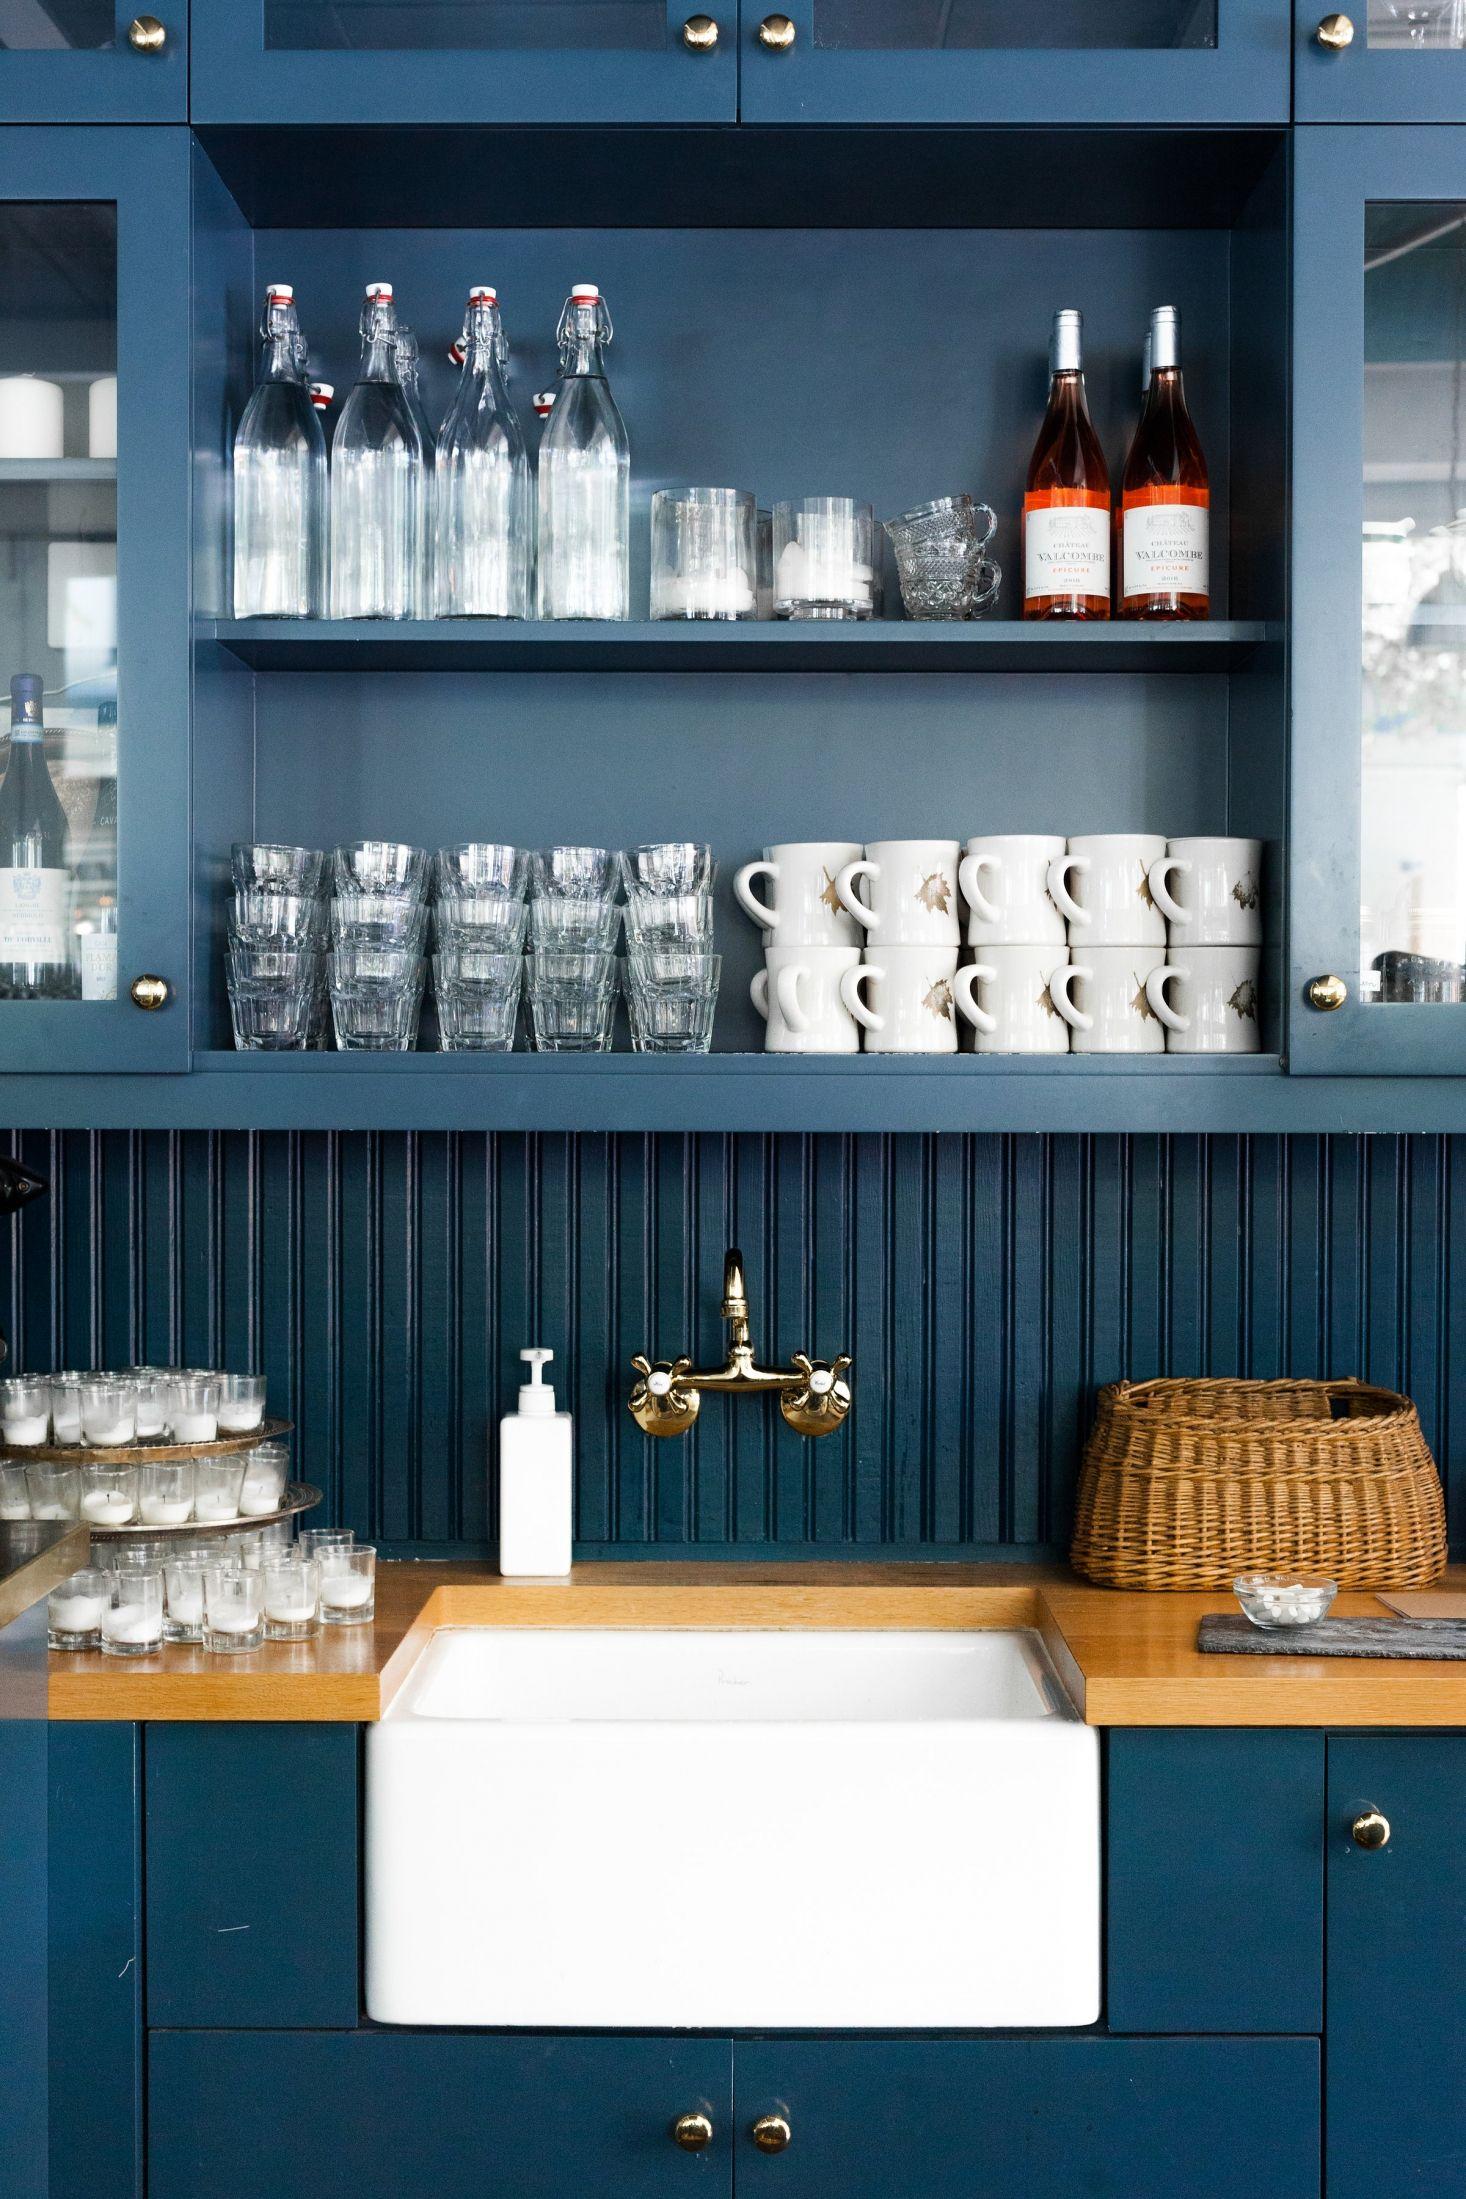 9 Design Ideas to Steal from the Little London Plane in Seattle